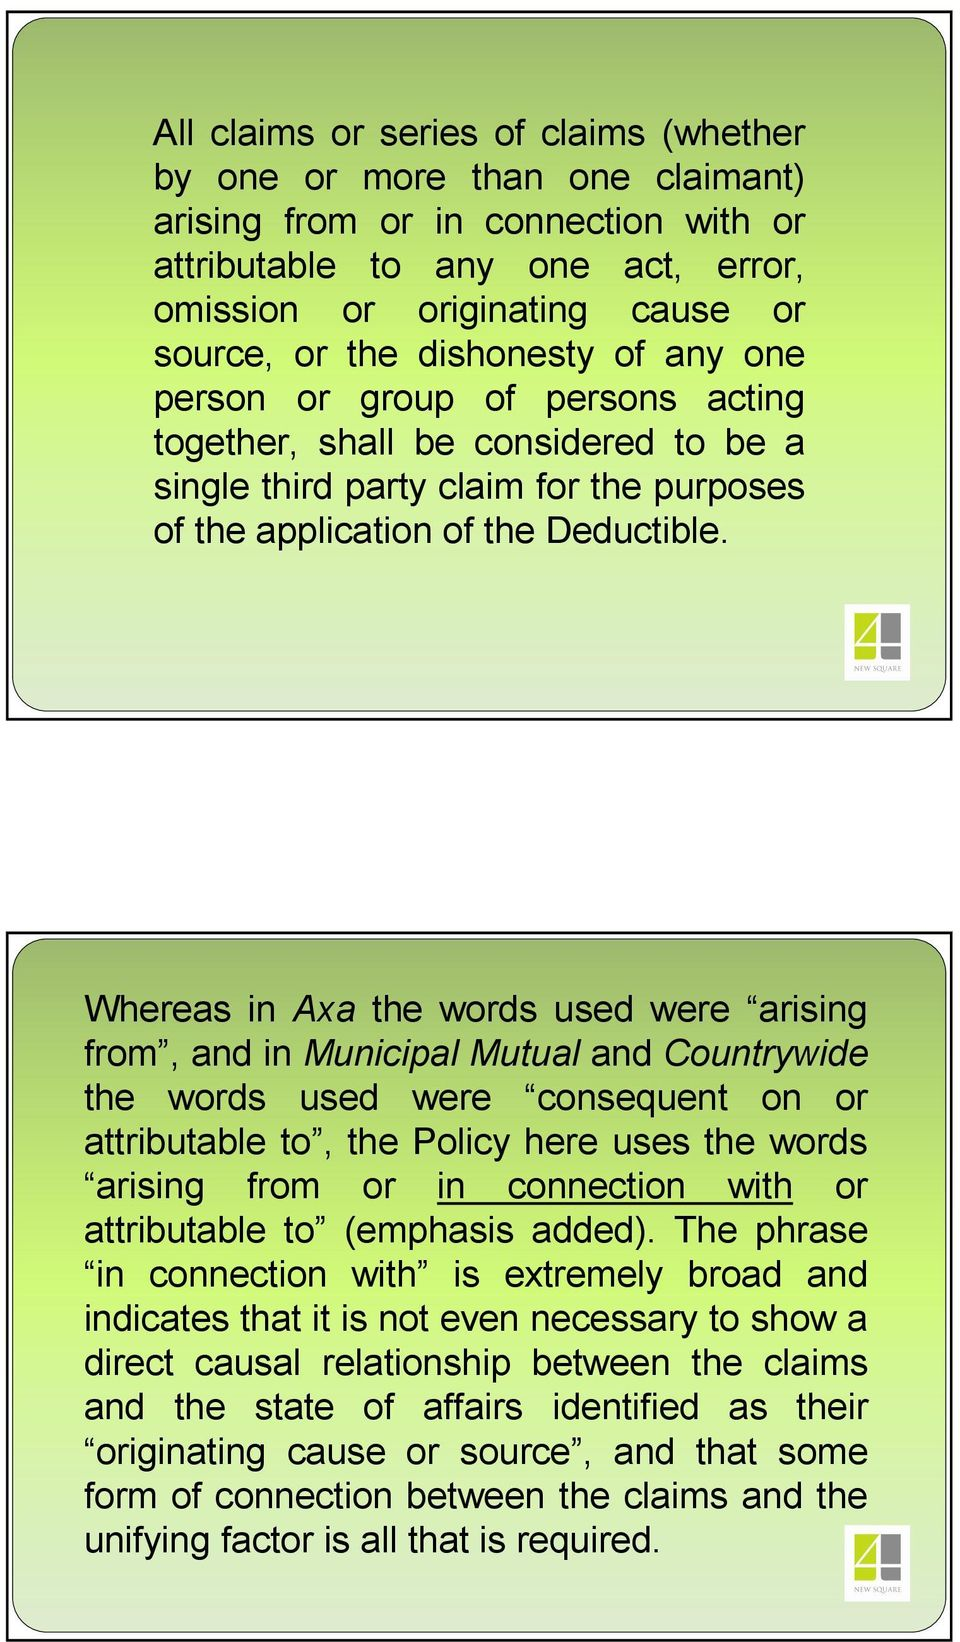 Whereas in Axa the words used were arising from, and in Municipal Mutual and Countrywide the words used were consequent on or attributable to, the Policy here uses the words arising from or in